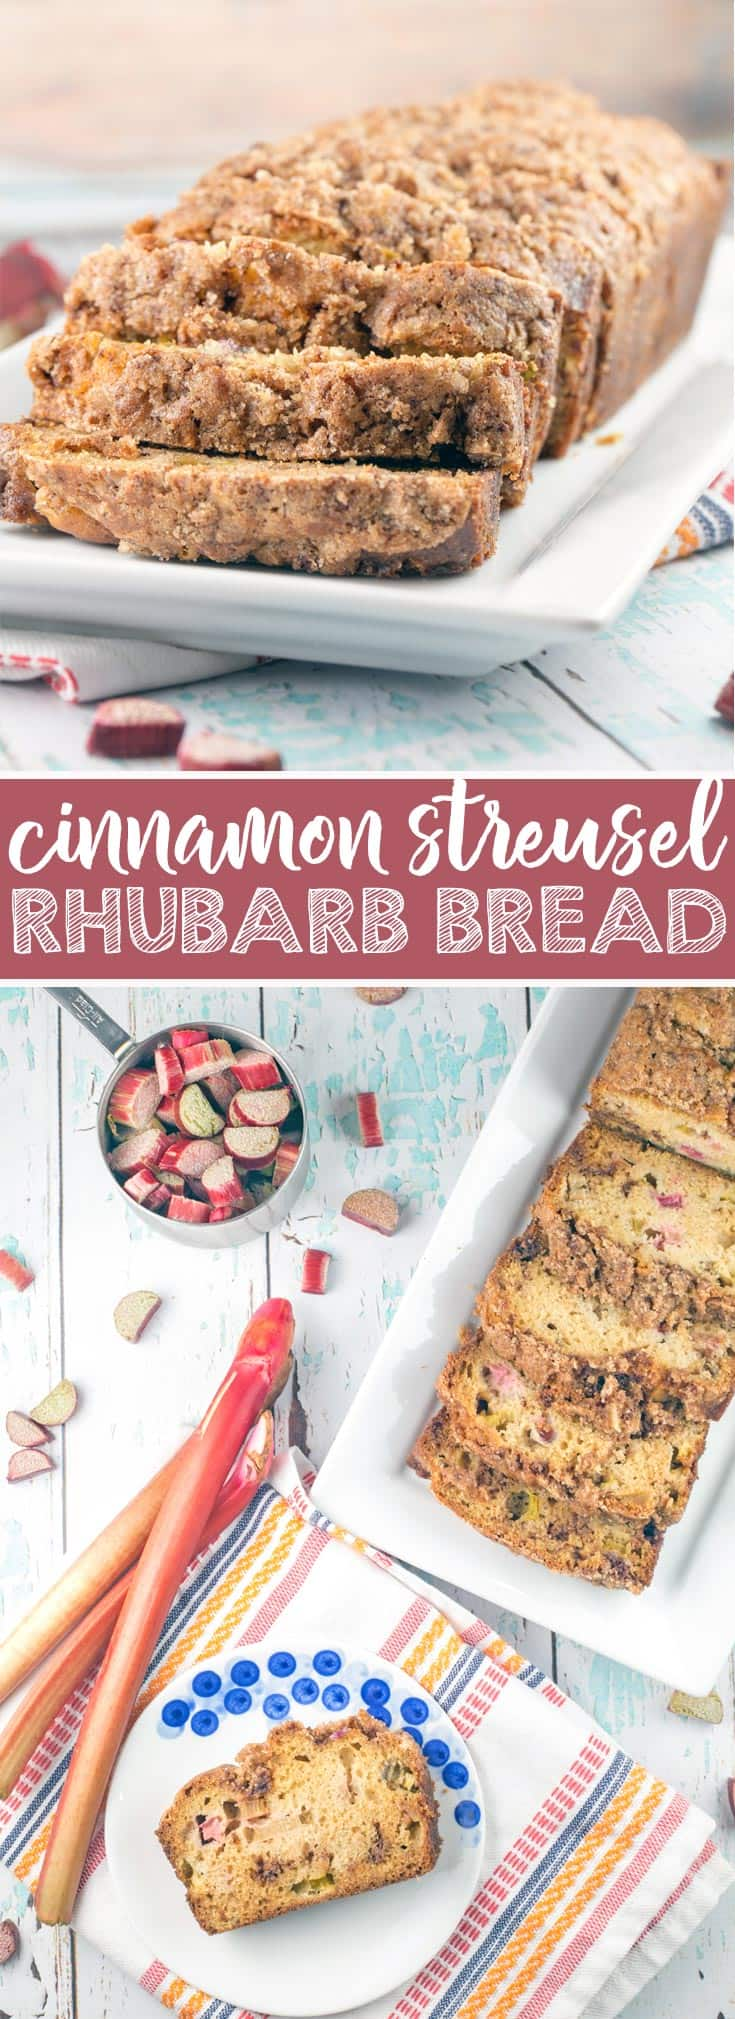 Cinnamon Streusel Rhubarb Quick Bread: a moist, tender quick bread jam packed with fresh rhubarb and a double dose of cinnamon streusel layered into the bread and coating the top.  {Bunsen Burner Bakery}